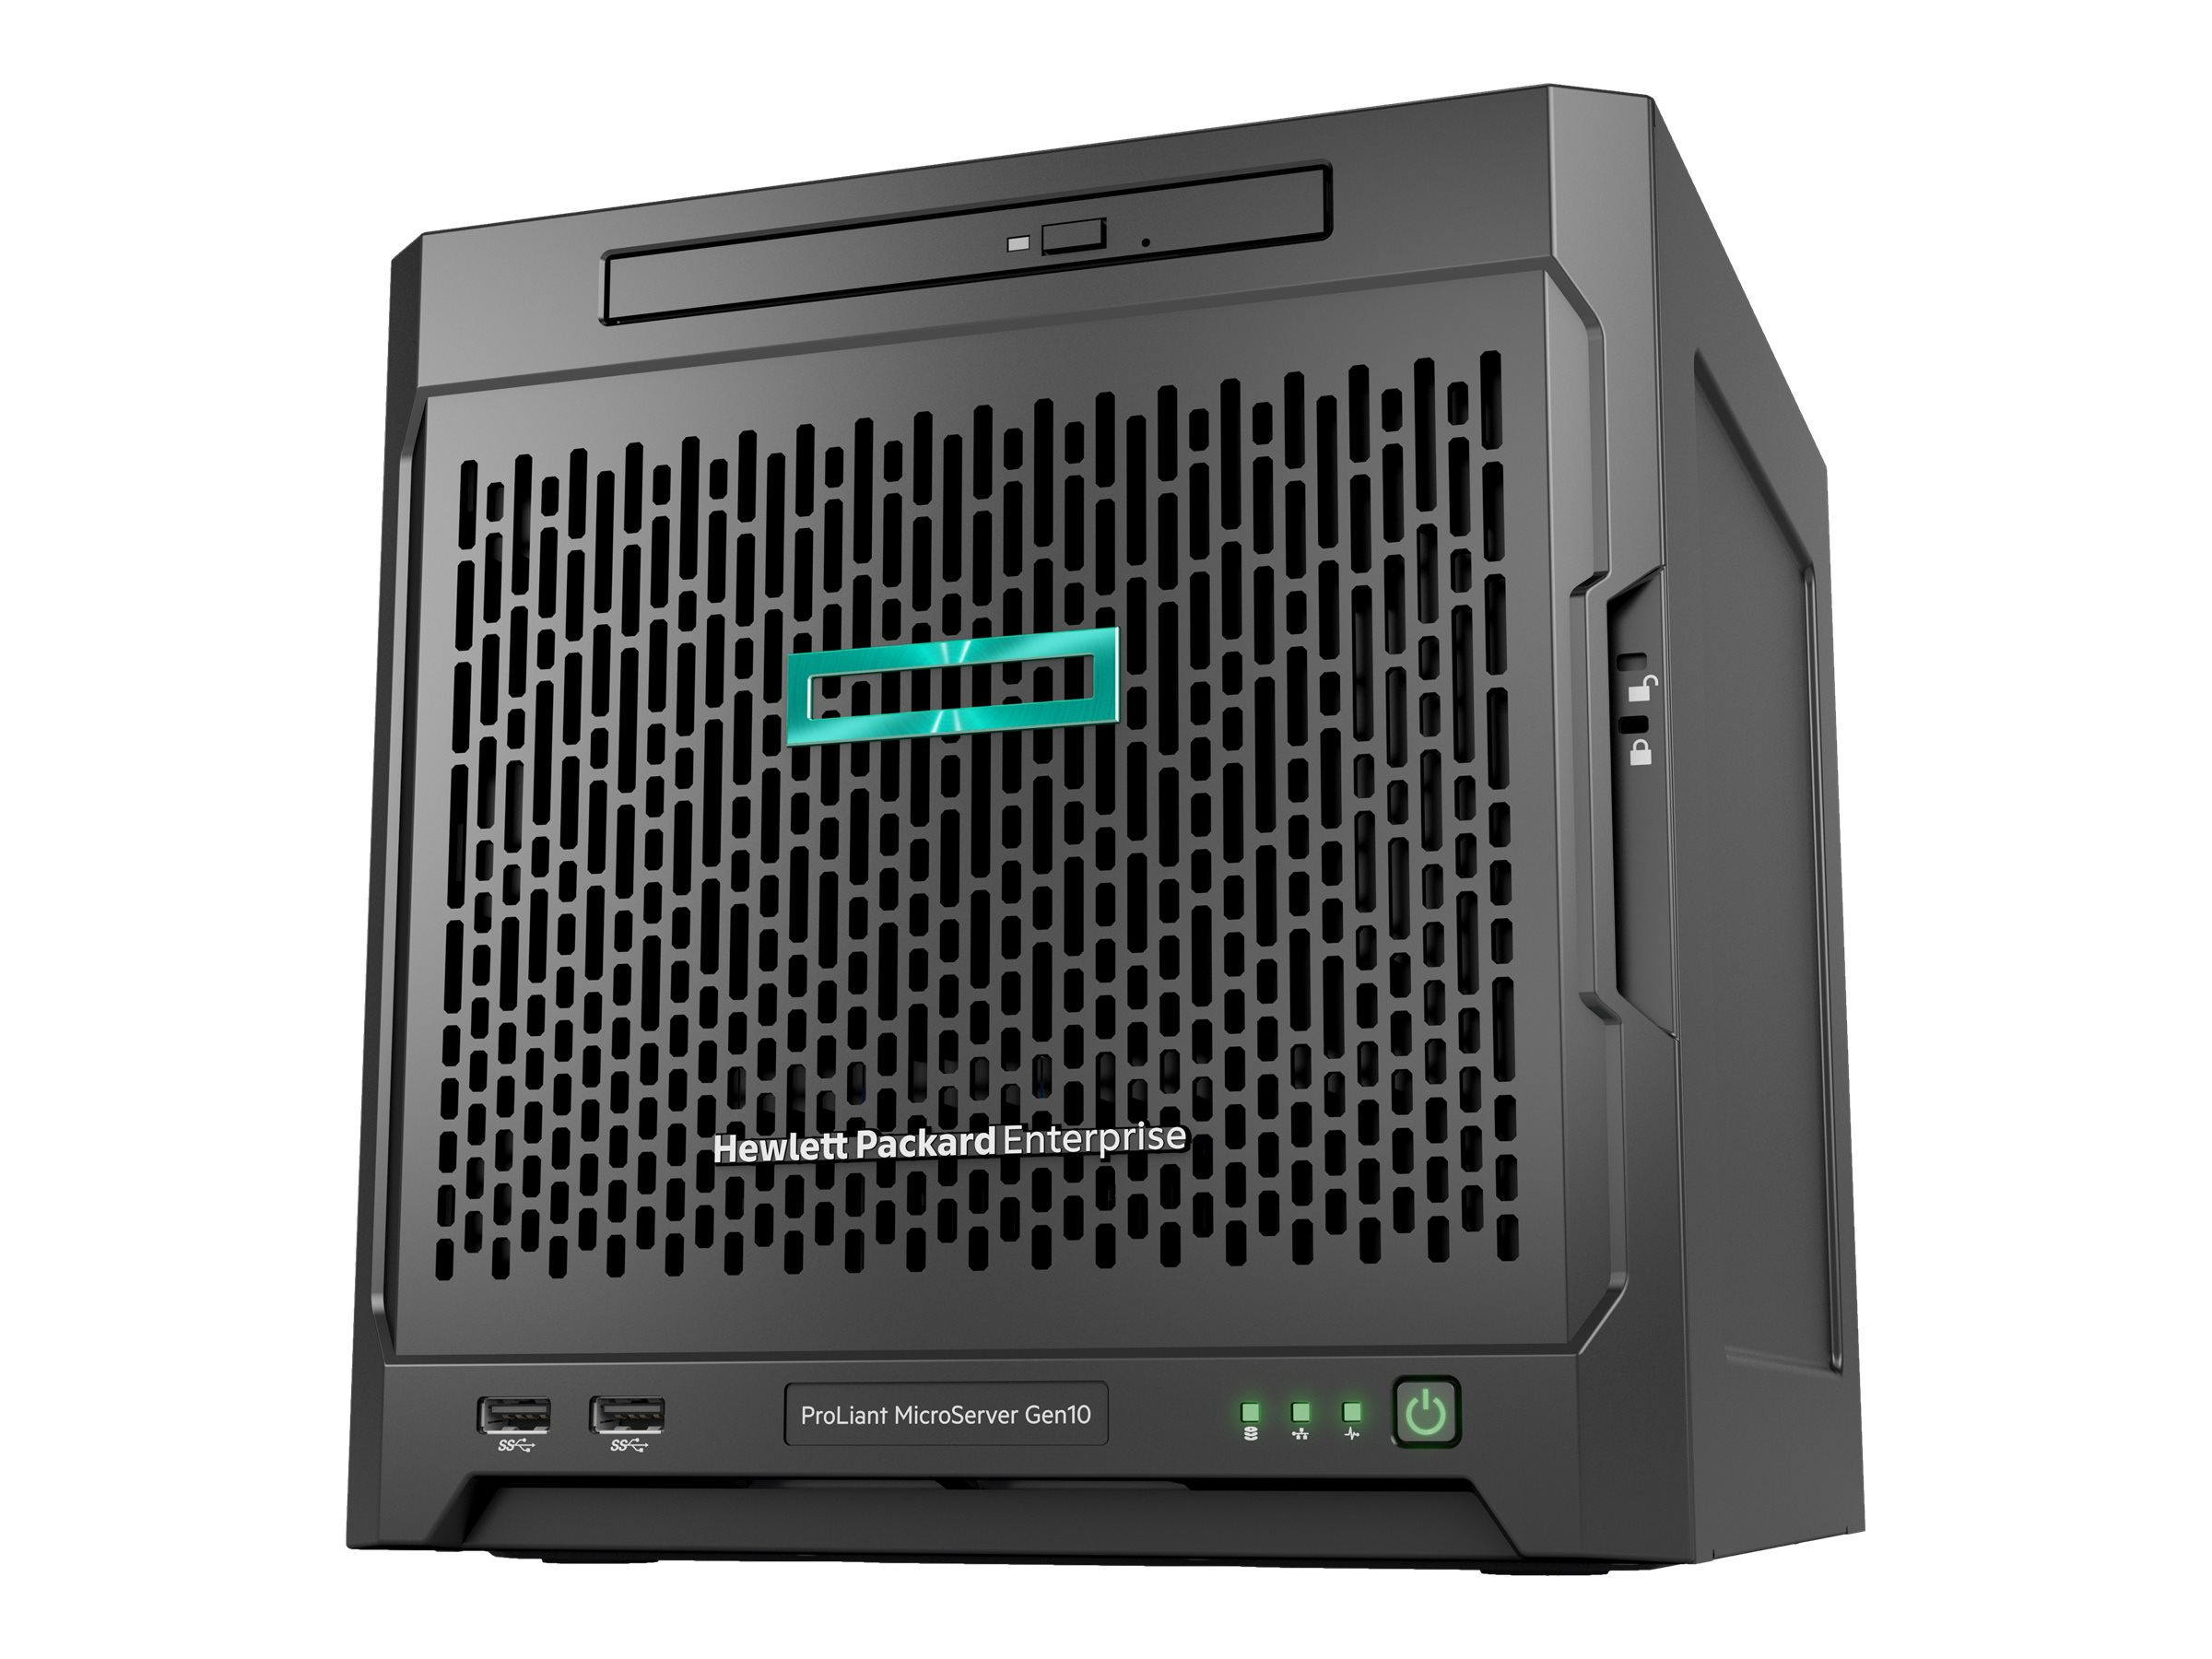 HPE ProLiant MicroServer Gen10 - ultra micro tower - Opteron X3421 2.1 GHz - 8 GB